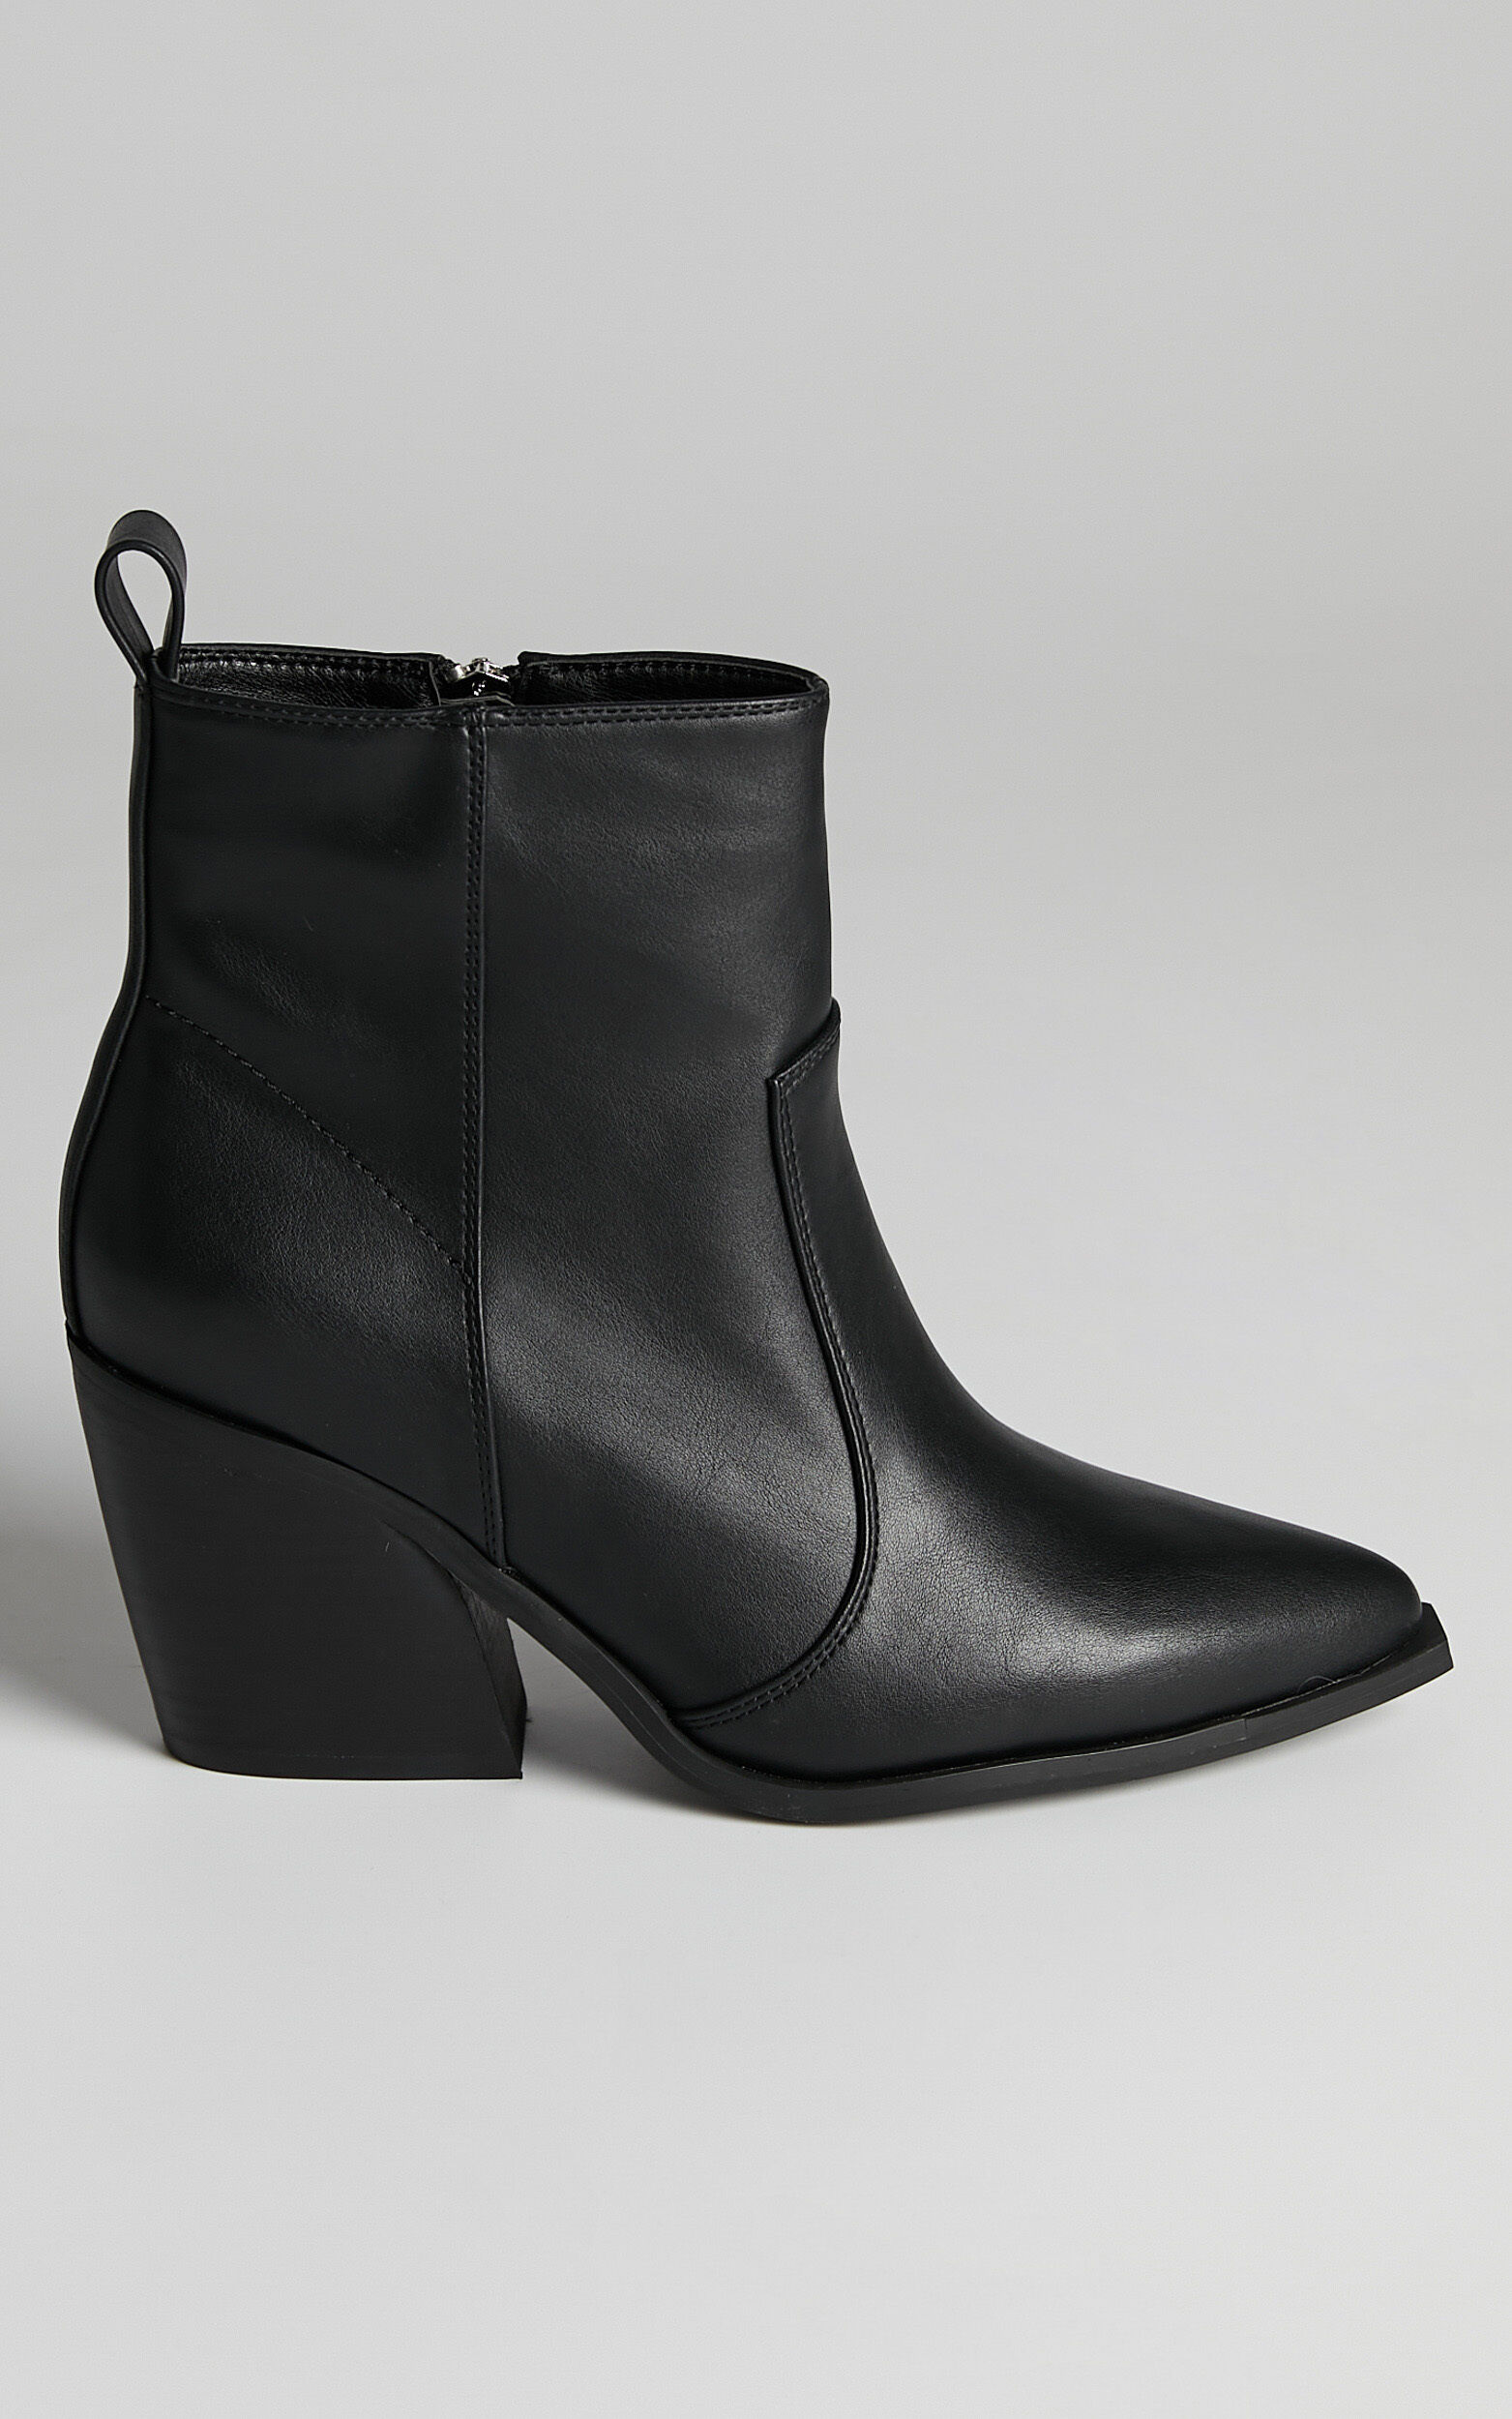 Therapy - Dallas Boots in Black - 05, BLK1, super-hi-res image number null